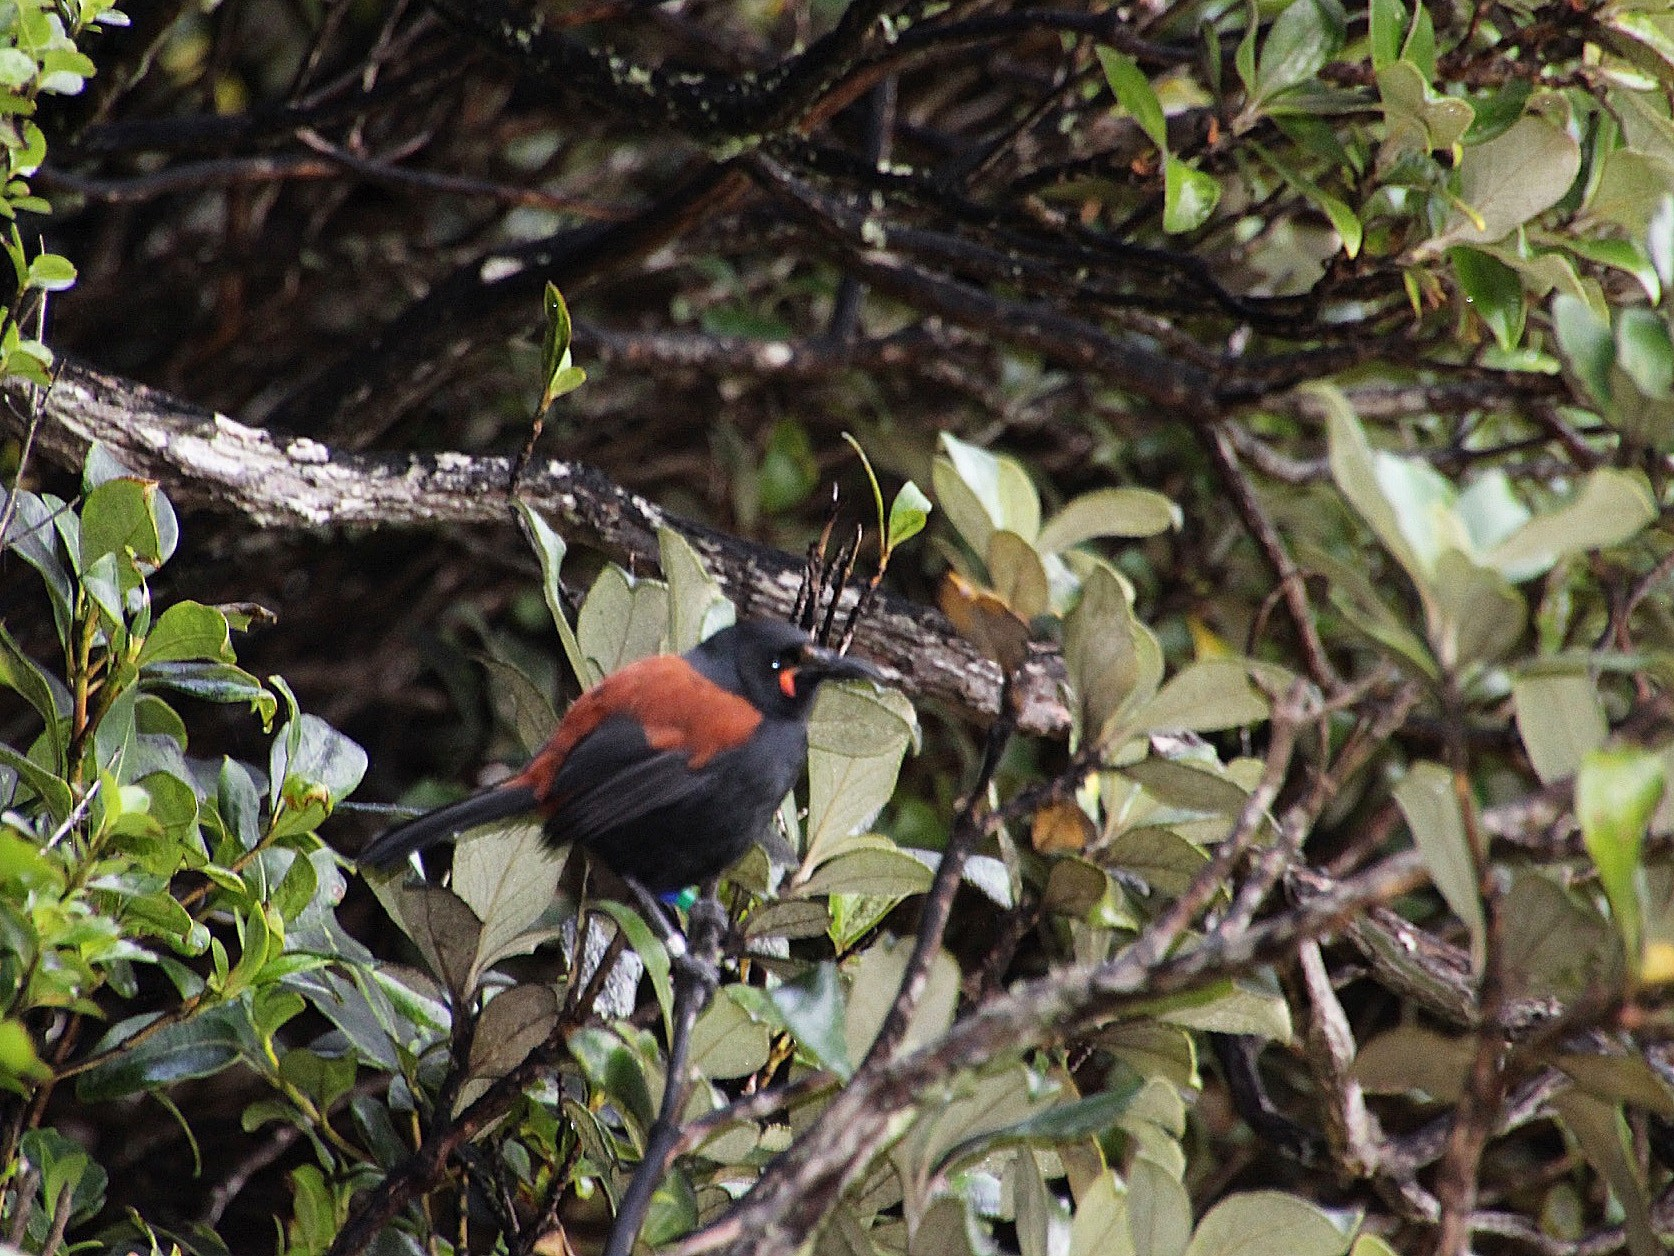 South Island Saddleback - Nancy Braun